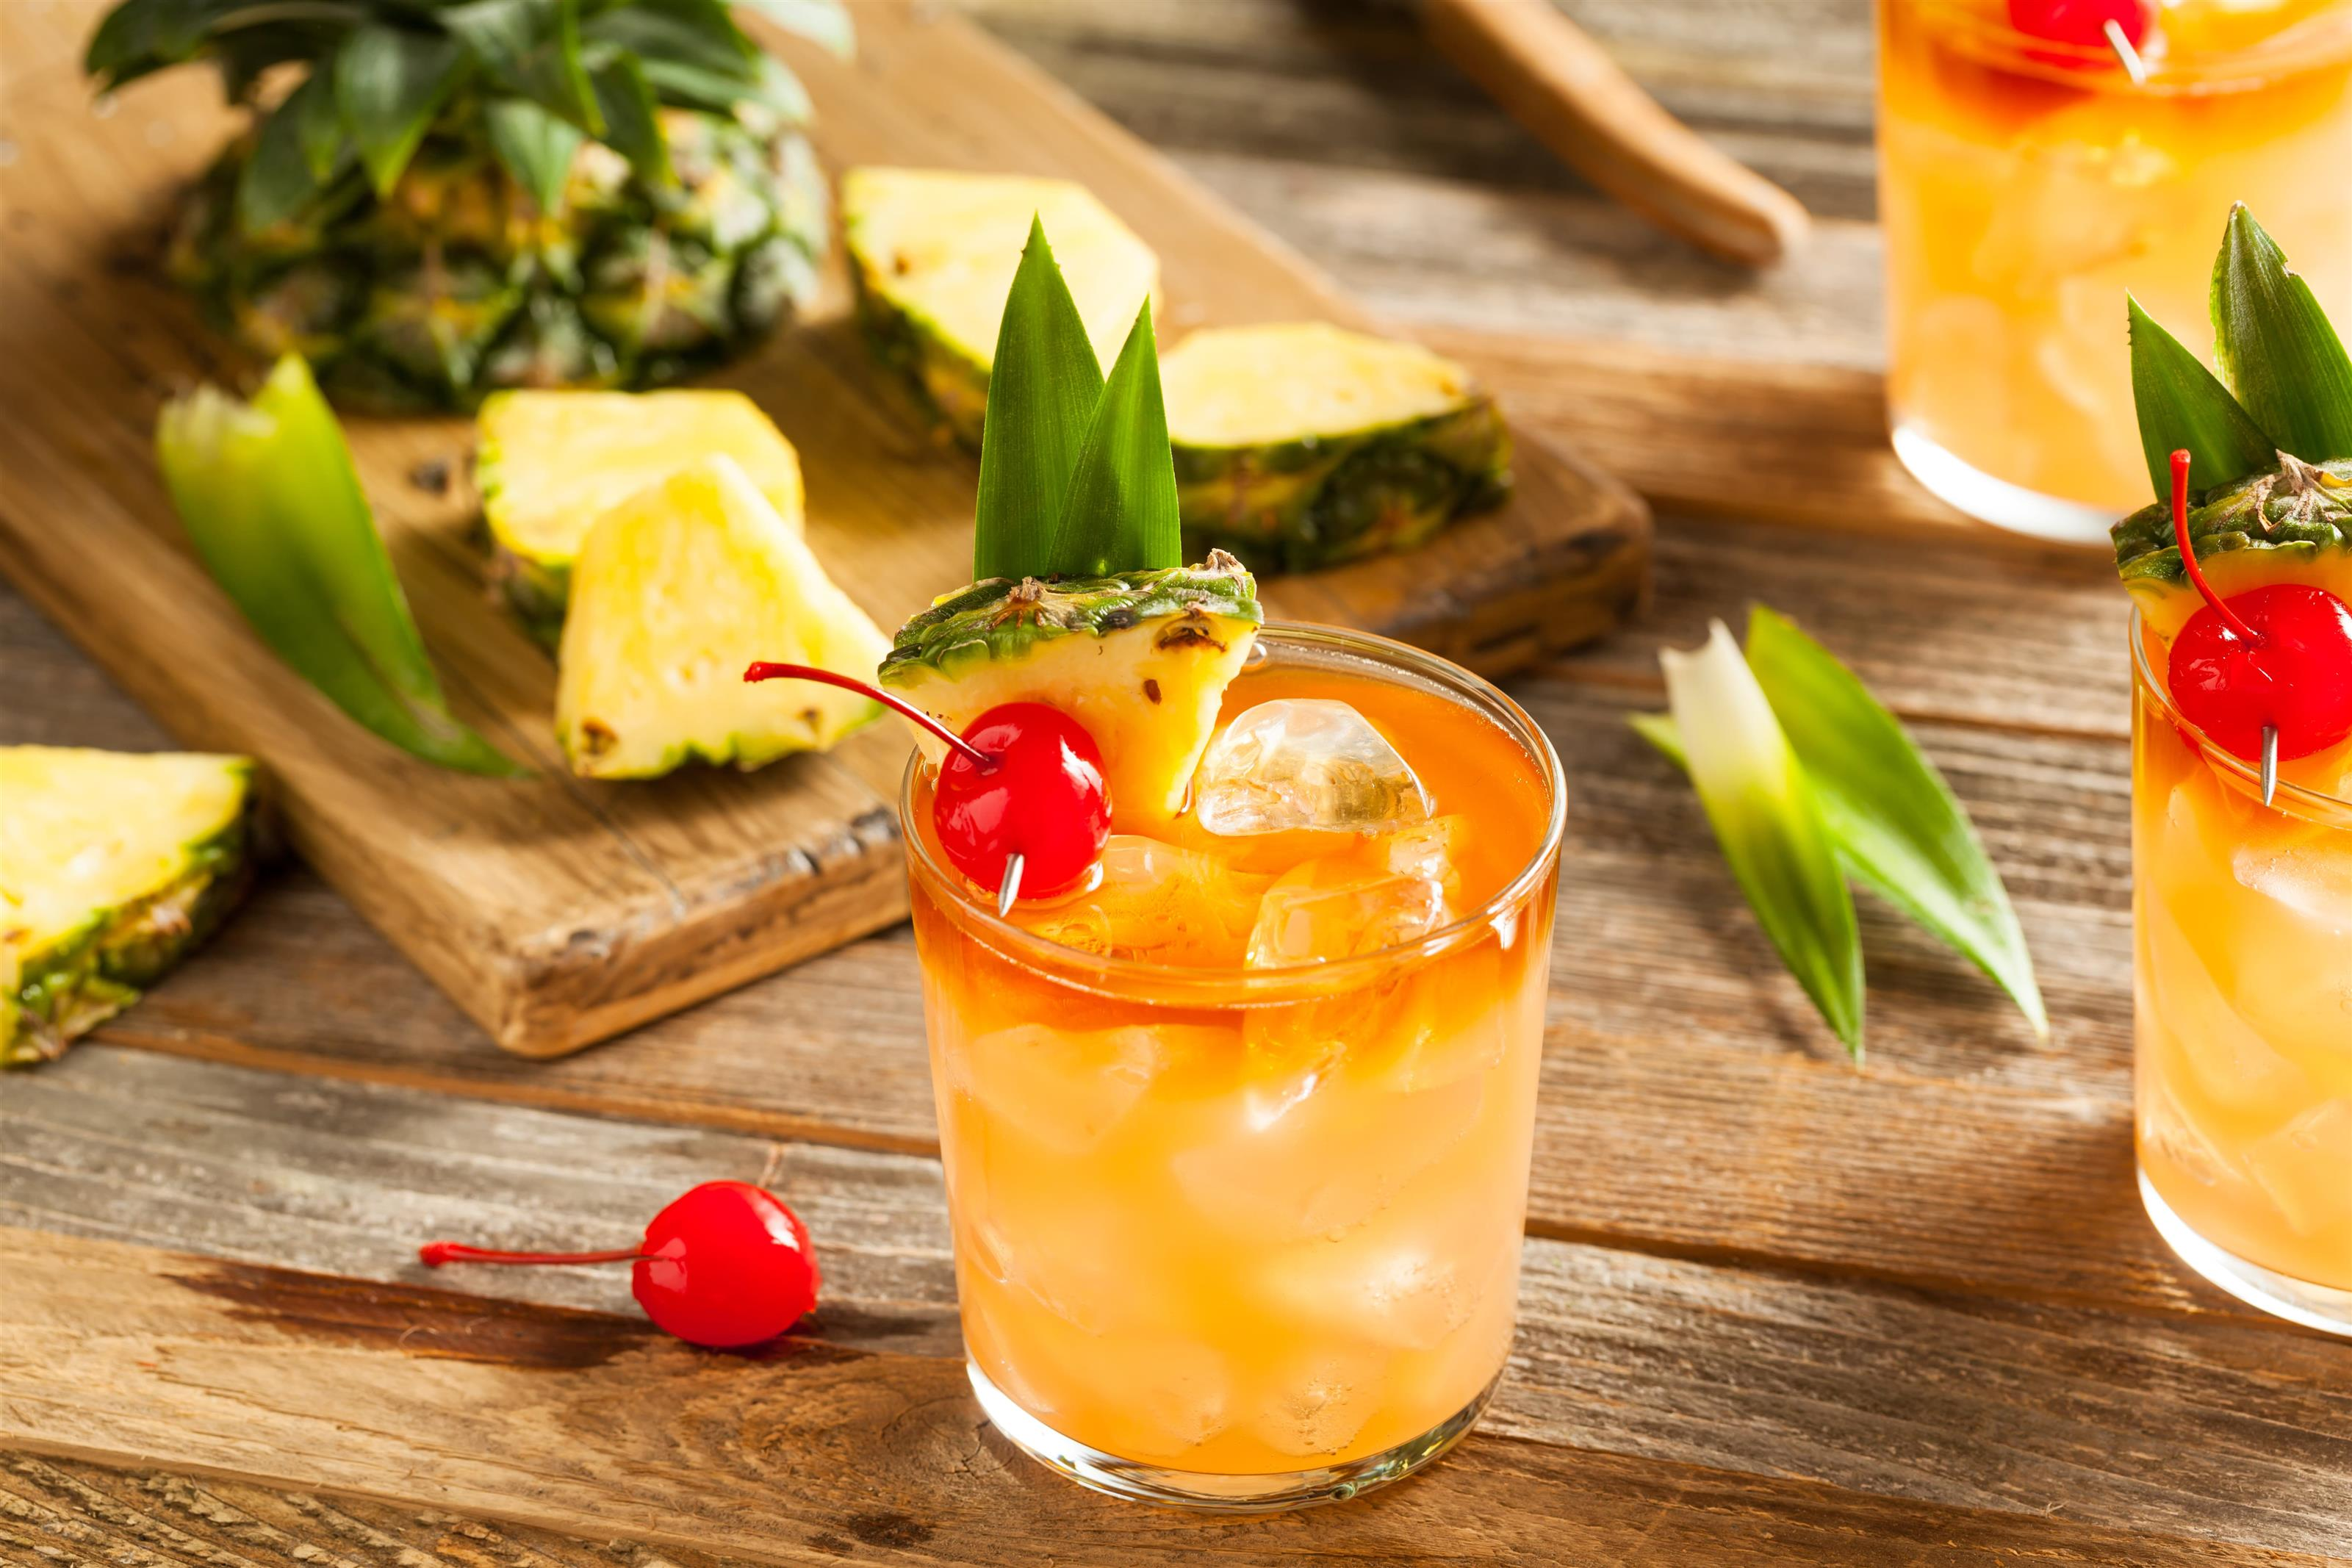 Tropical Cocktail with pineapple and cherry